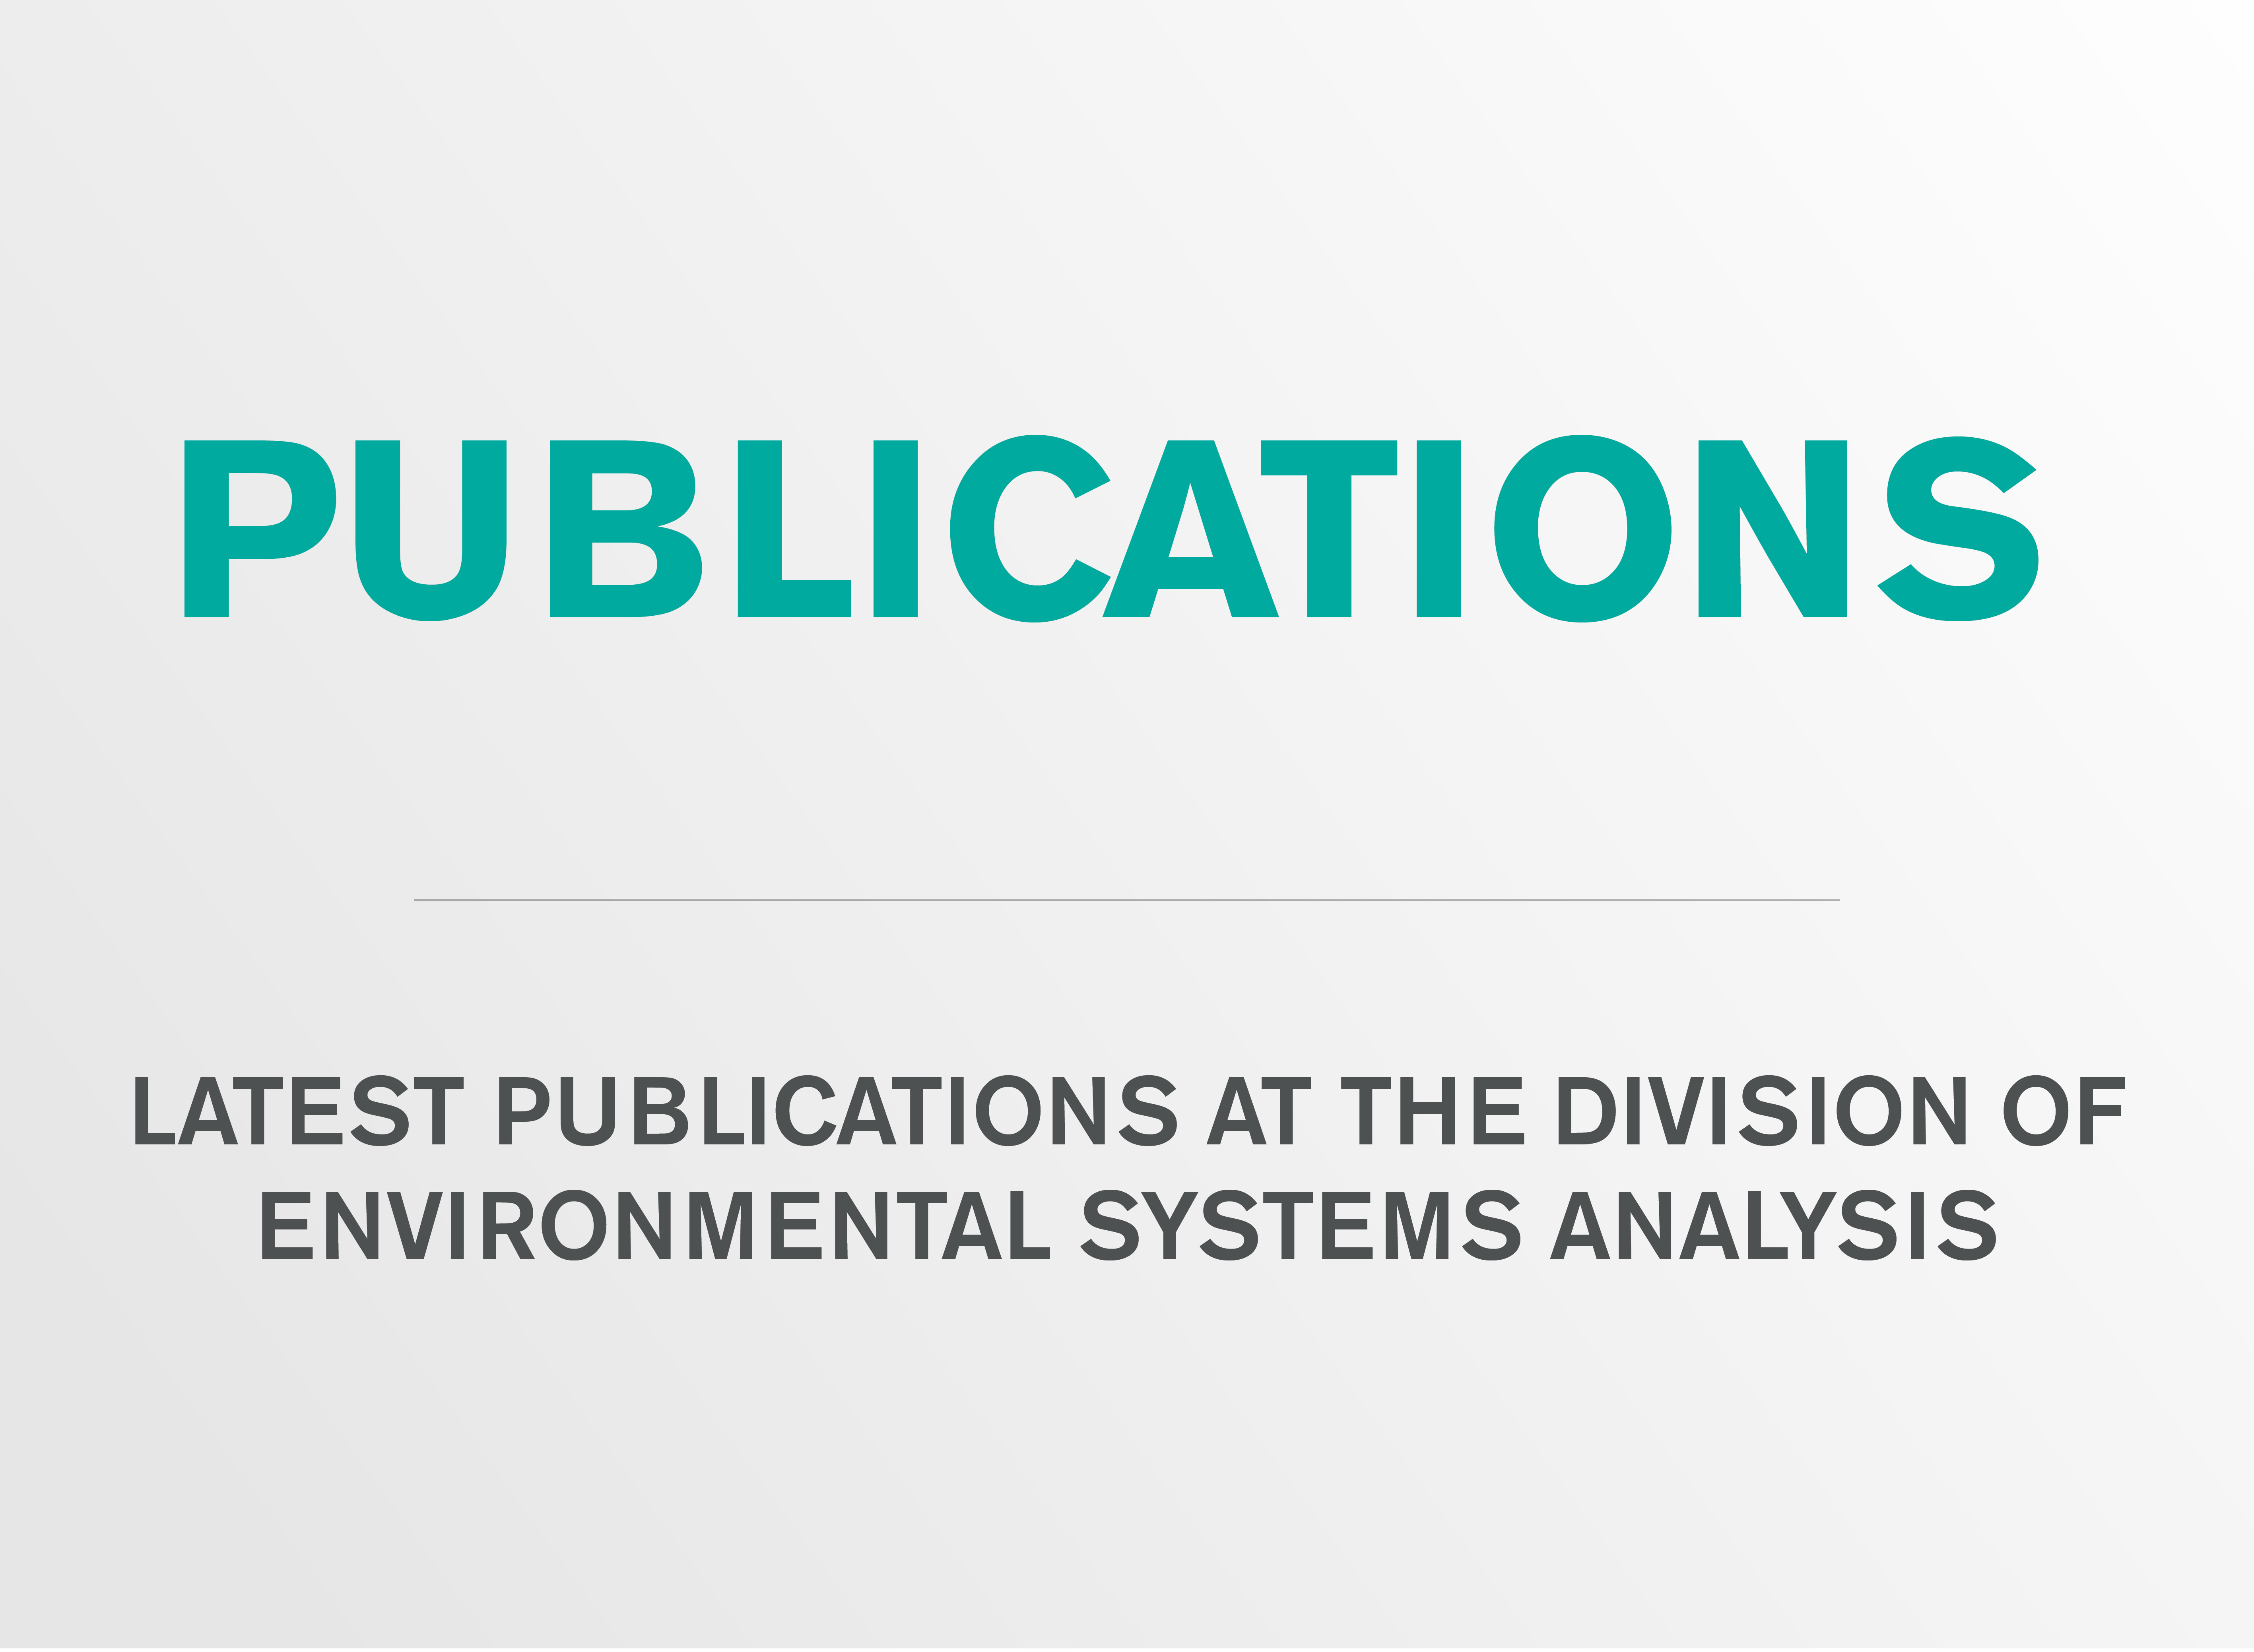 Publications at the division of Environmental Systems Analysis